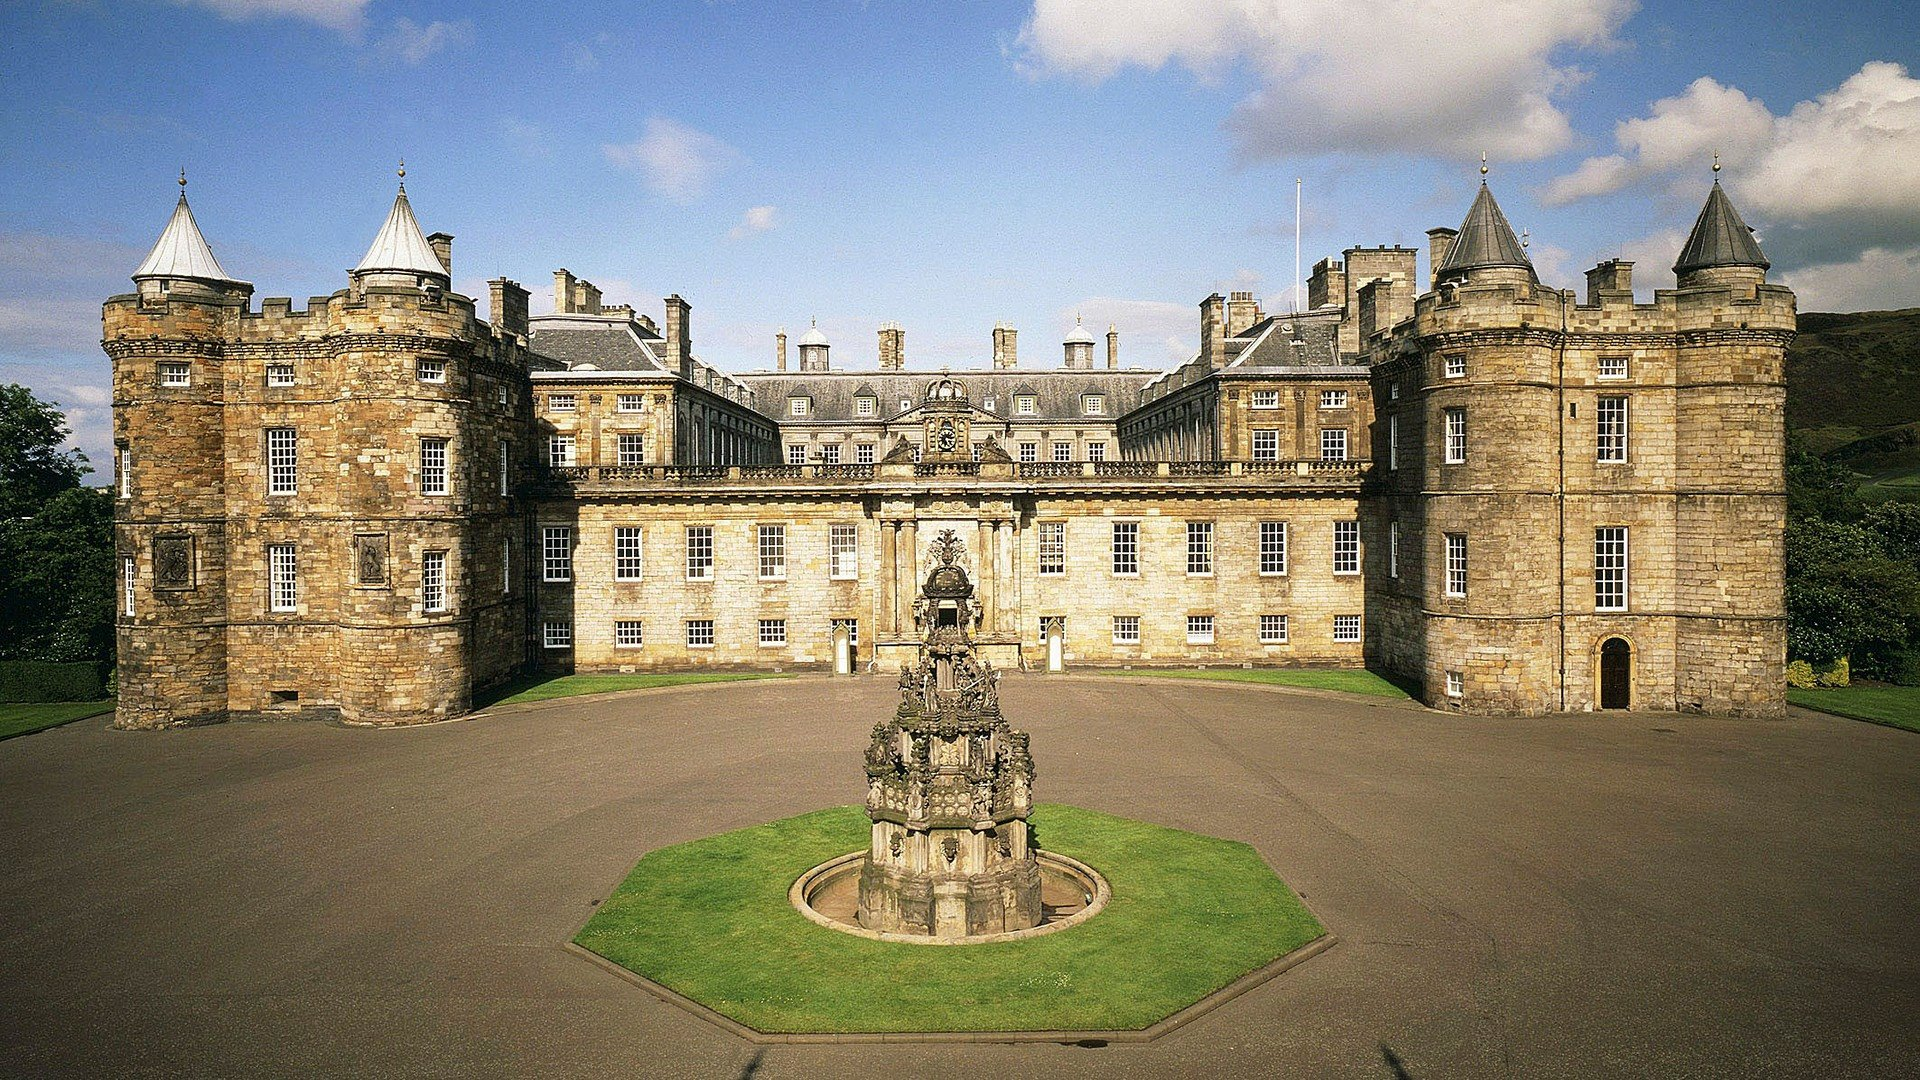 The Palace Of Holyroodhouse casa de la familia britancia en Edimburgo. The Palace Of Holyroodhouse